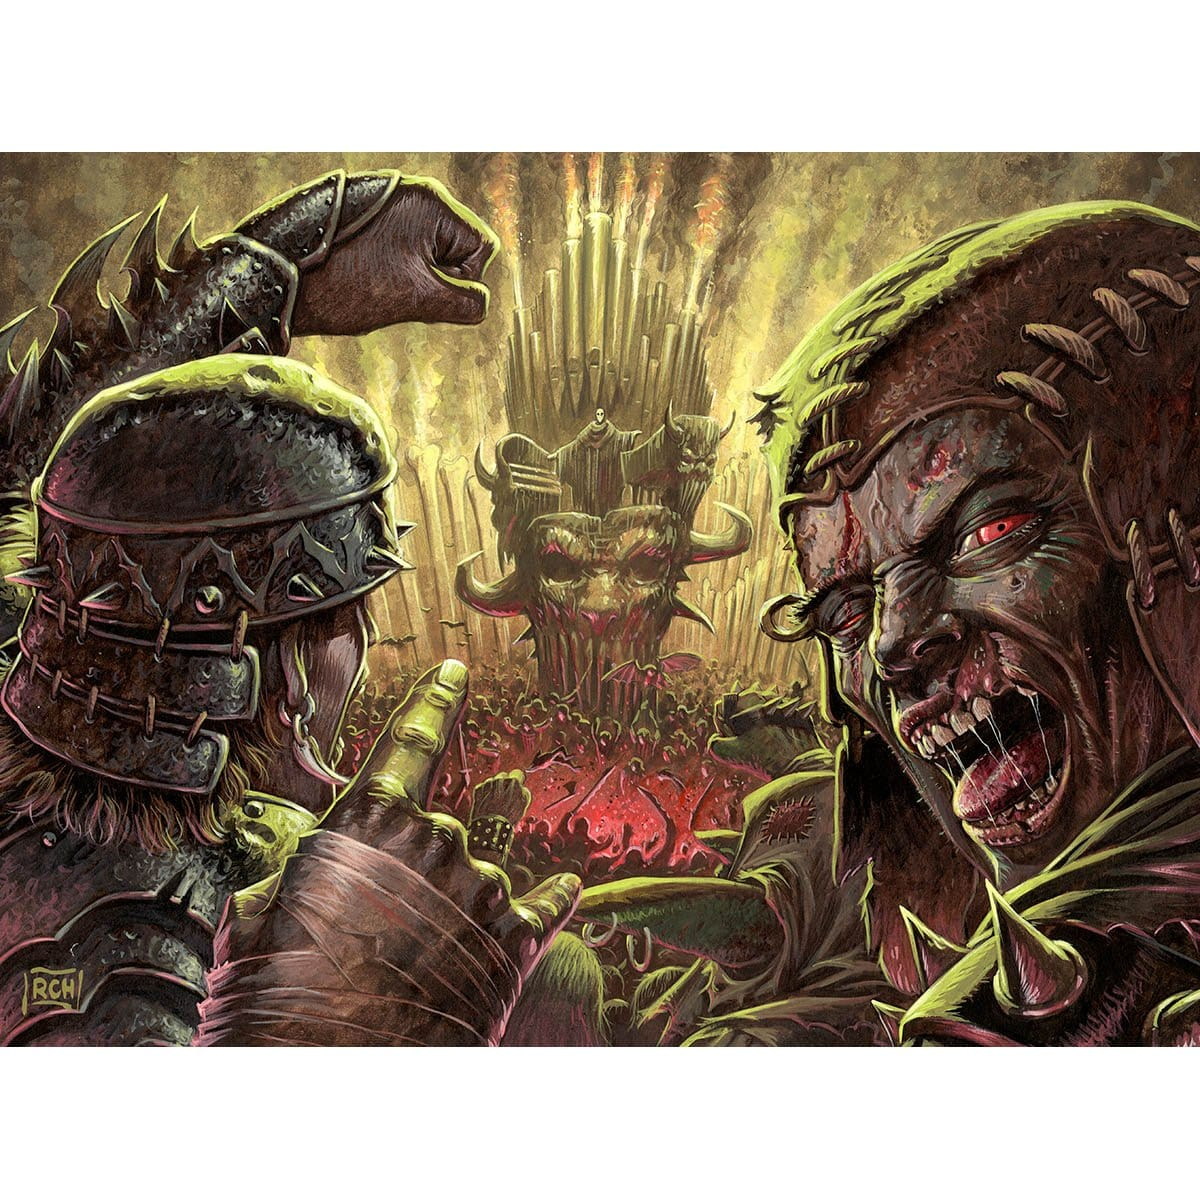 Anthem of Rakdos Print - Print - Original Magic Art - Accessories for Magic the Gathering and other card games